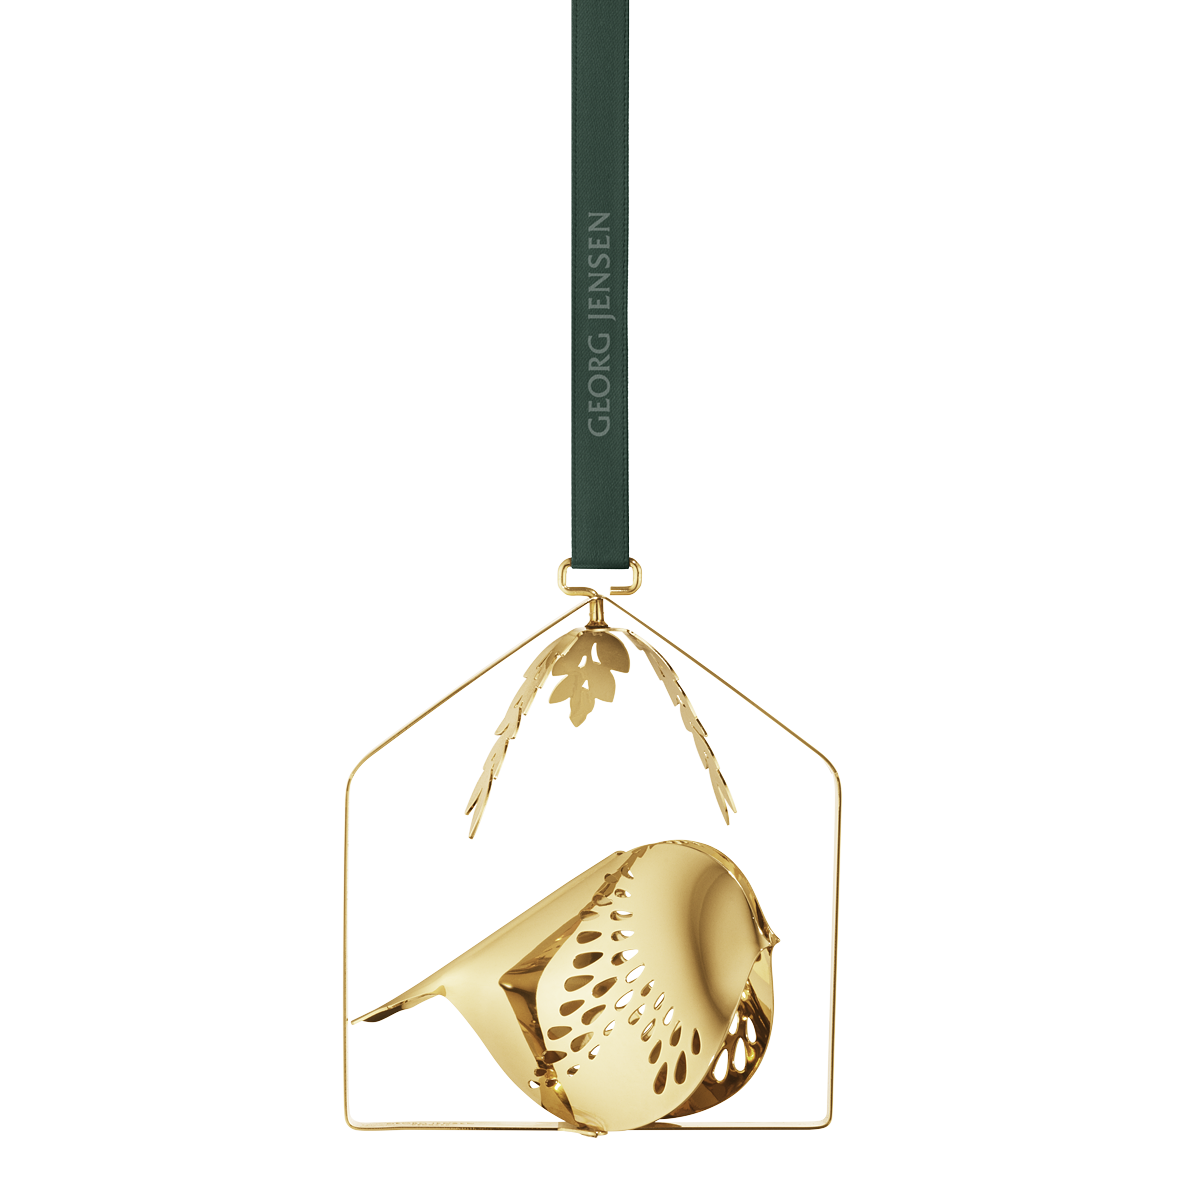 10010396_CC2018_CHRISTMAS_MOBILE_WINTER_BIRD_GOLD_1